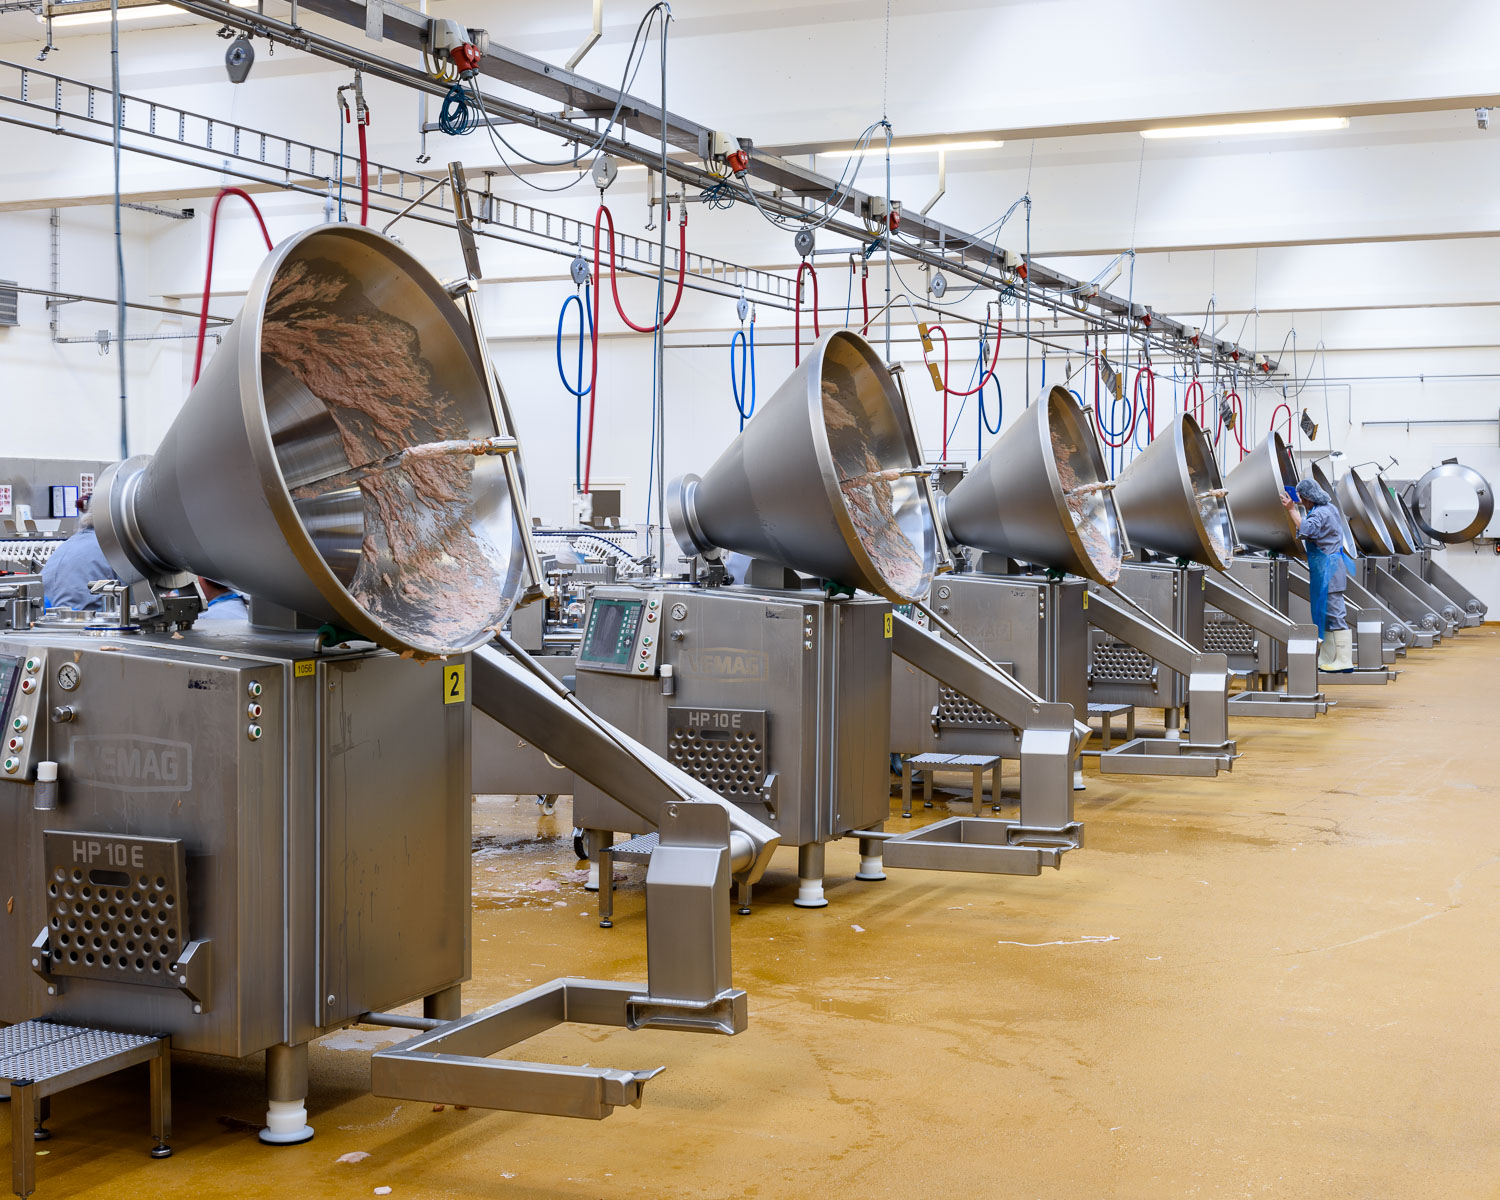 Machines that feed sausage meat into the casings are bering cleaned.